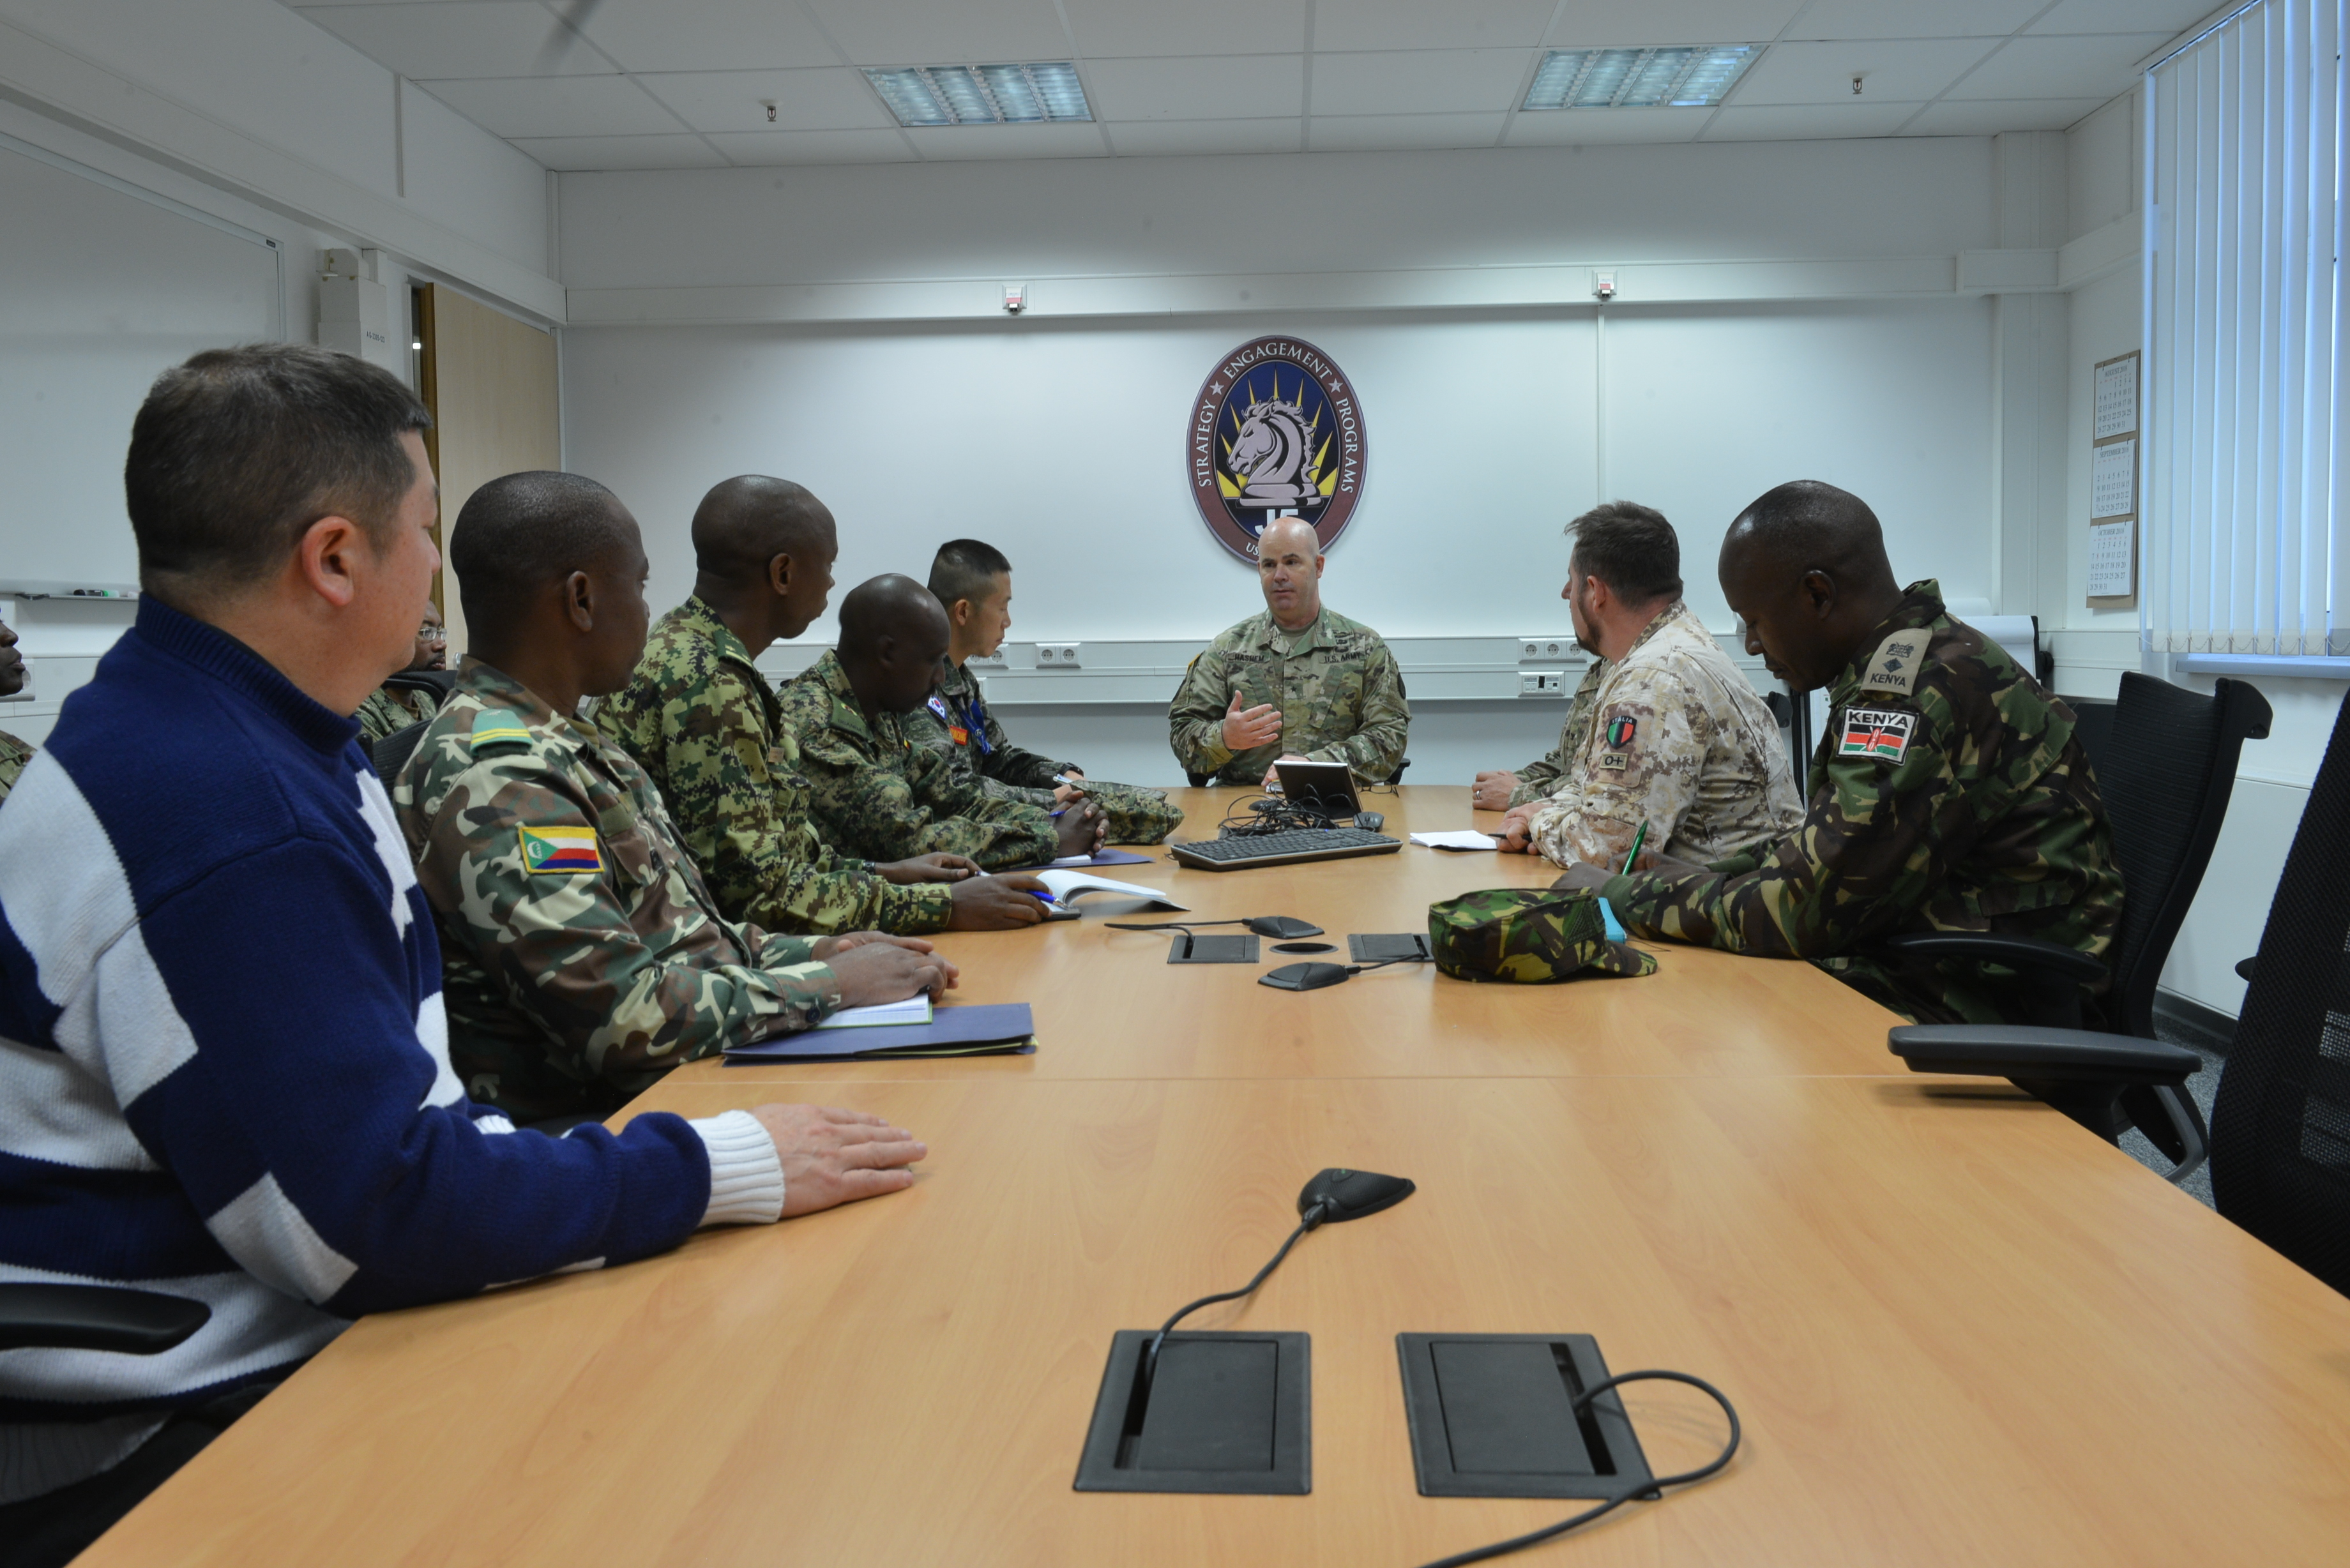 U.S. Army Brig. Gen. John Hashem, U.S. Africa Command J5 Deputy Director for Plans and Strategic Integration, meets with foreign liaison officers from Combined Joint Task Force - Horn of Africa Oct. 30, 2018 in Stuttgart, Germany. The liaison officers were visiting the AFRICOM headquarters to meet with staff and receive briefings.